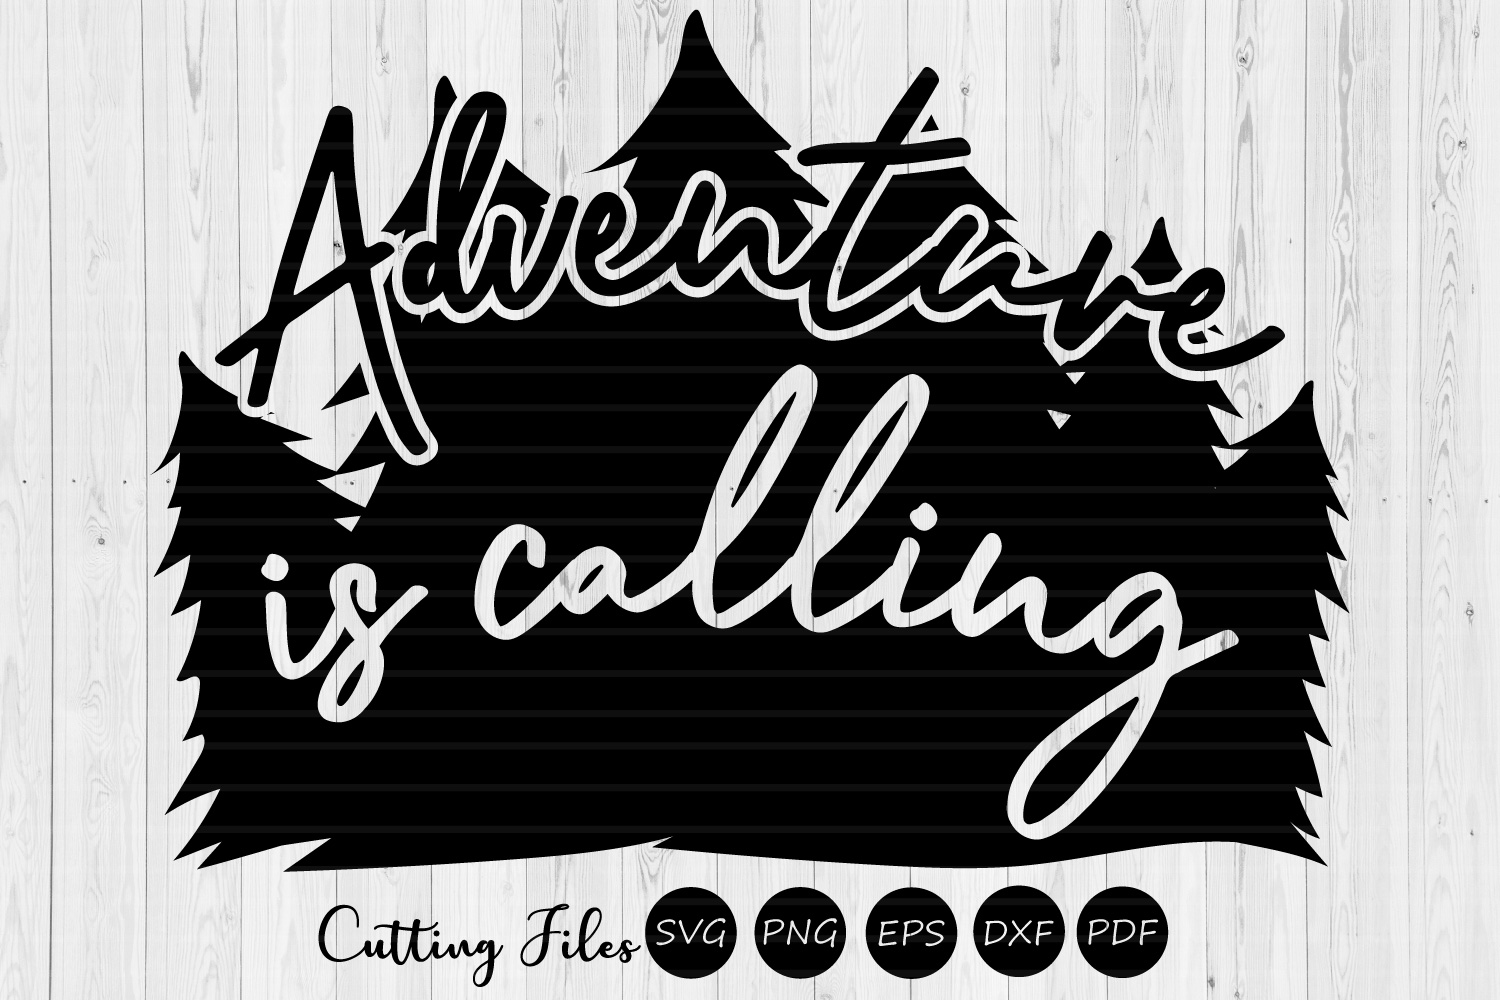 Download Free Adventure Is Calling Camping Svg Graphic By Hd Art Workshop Creative Fabrica for Cricut Explore, Silhouette and other cutting machines.